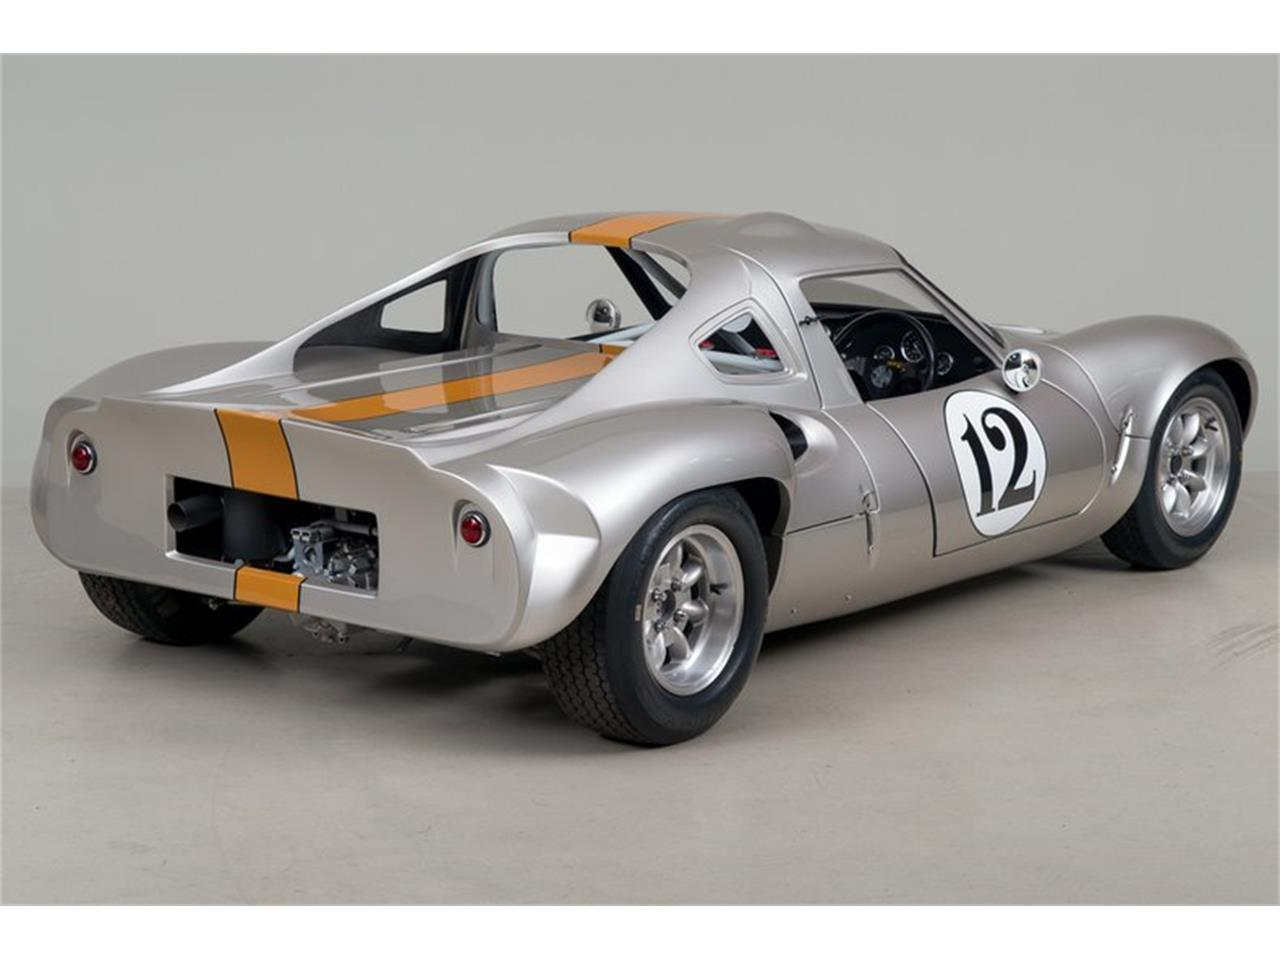 1967 Ginetta G12 for sale in Scotts Valley, CA – photo 4